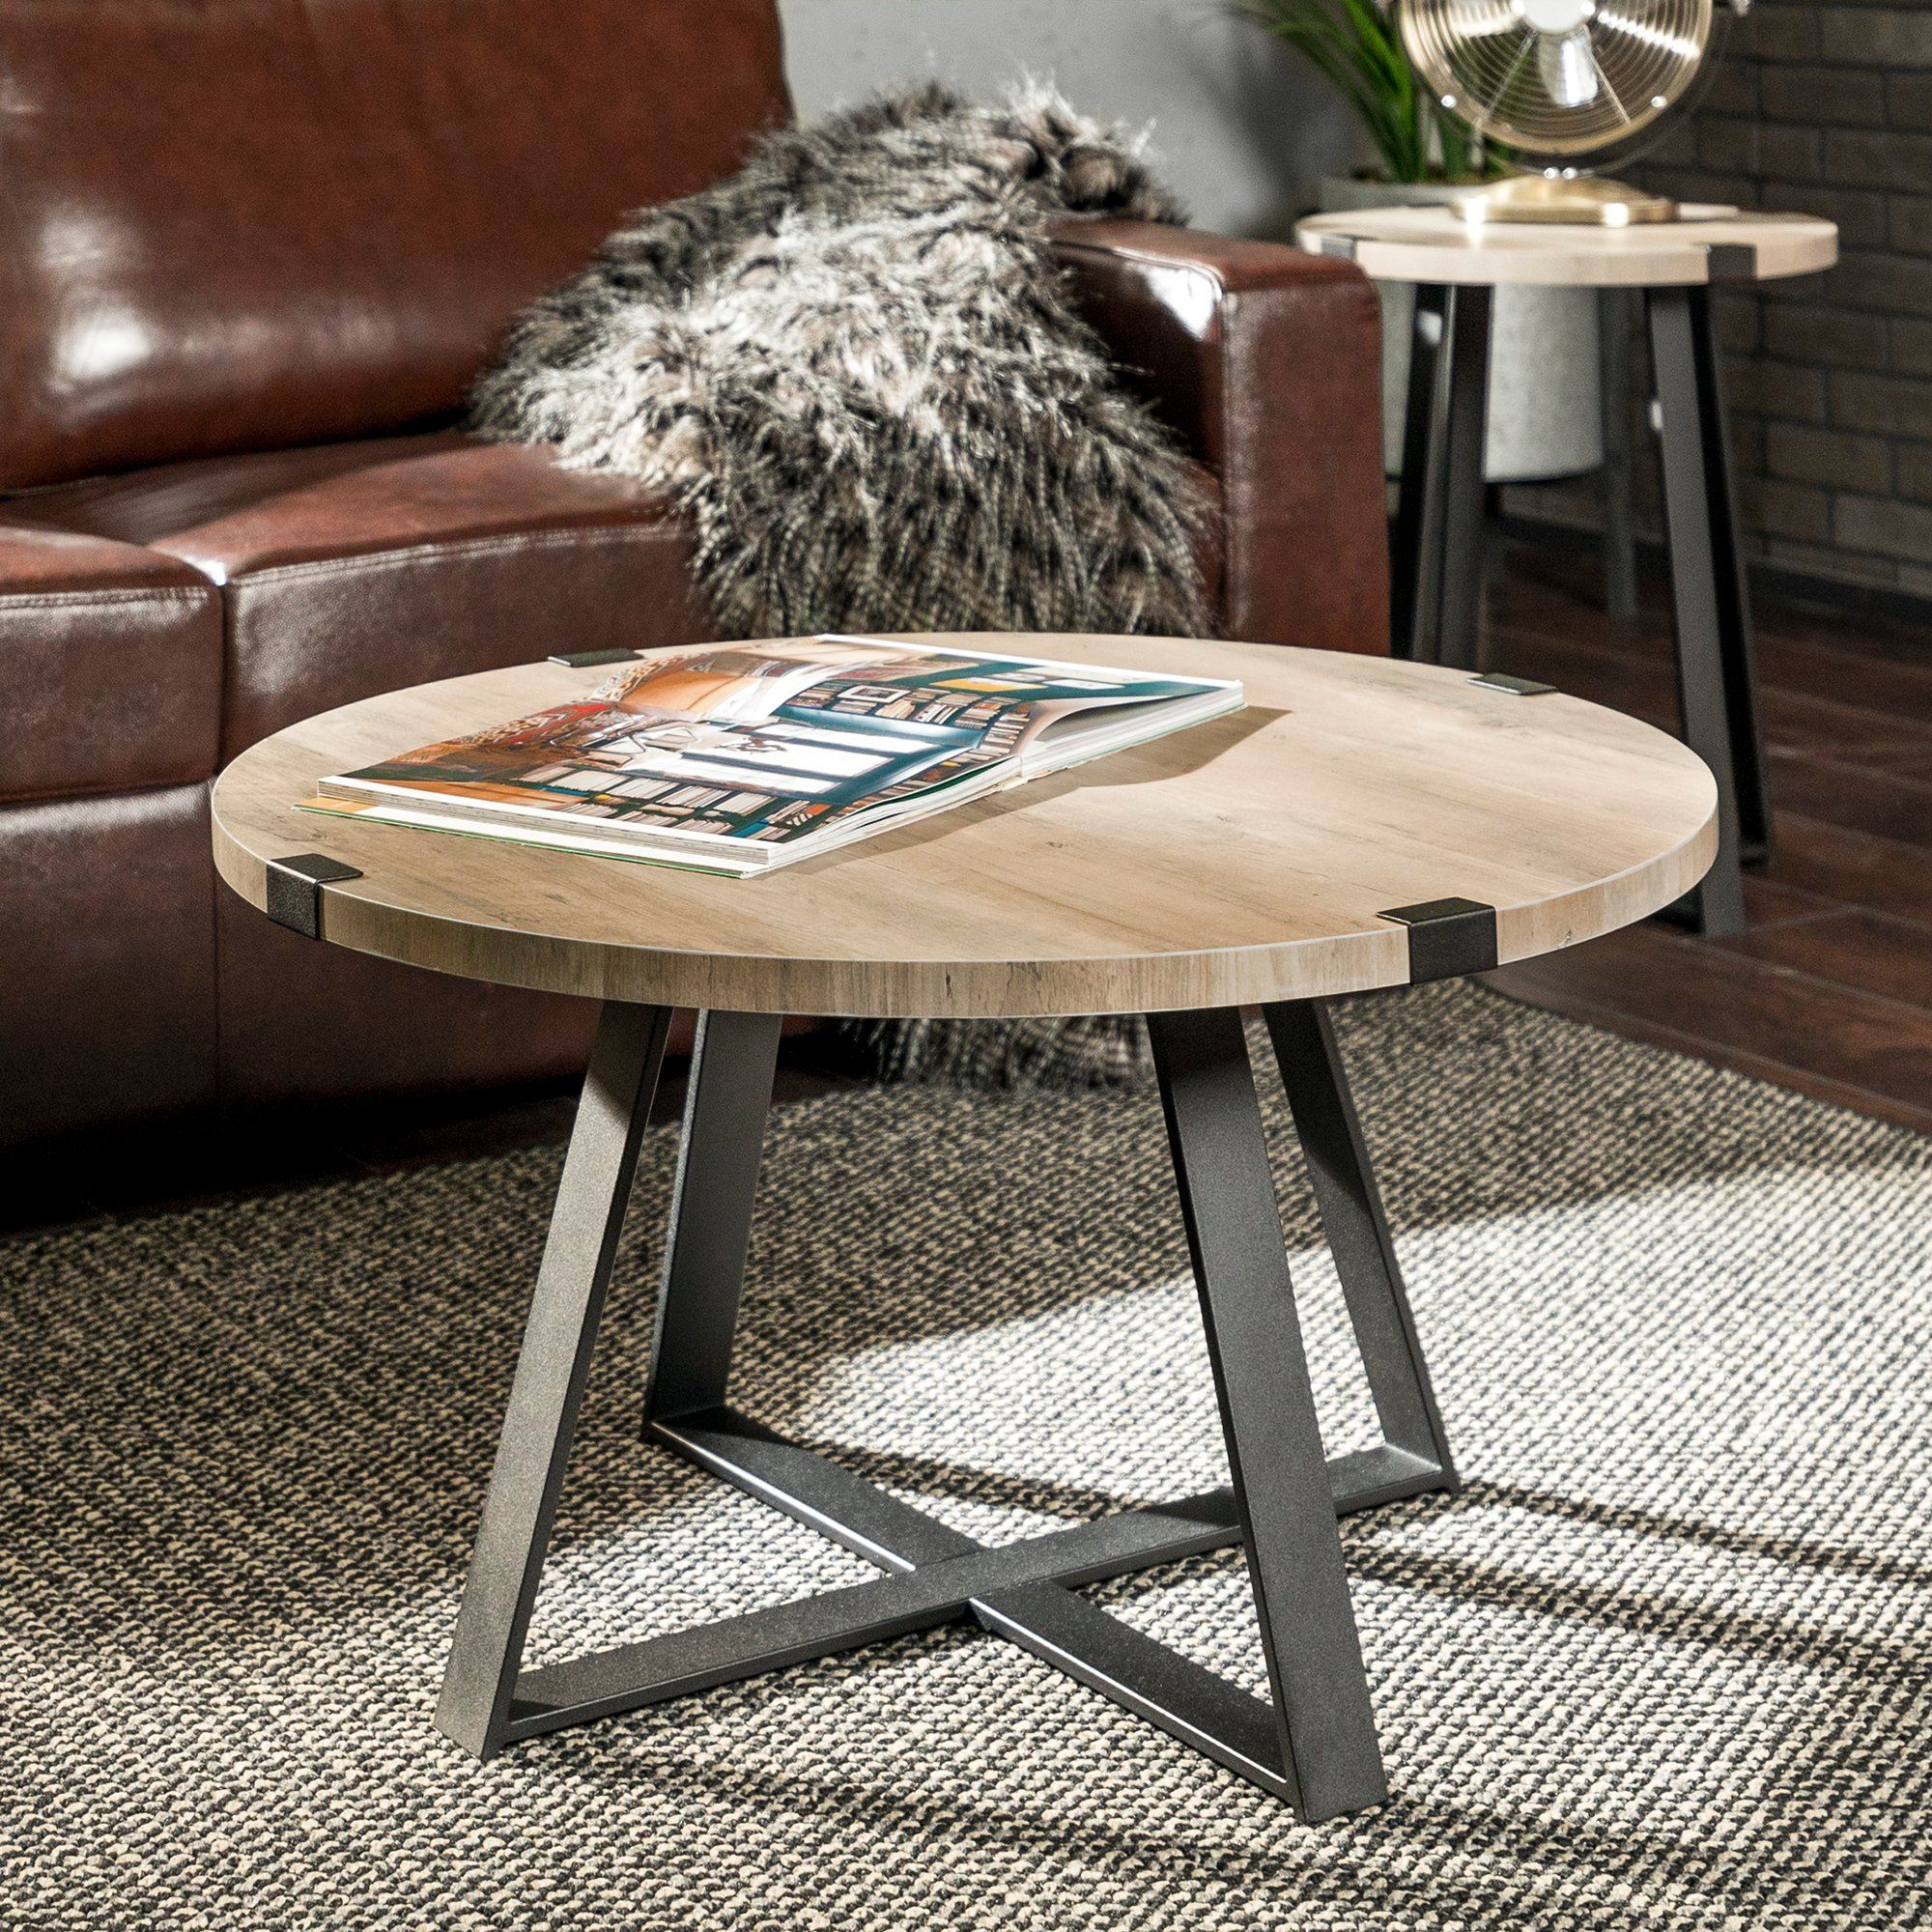 Rustic Round Coffee Table Grey Wash Black In 2020 Living Room Accent Tables Round Metal Coffee Table Coffee Table Grey